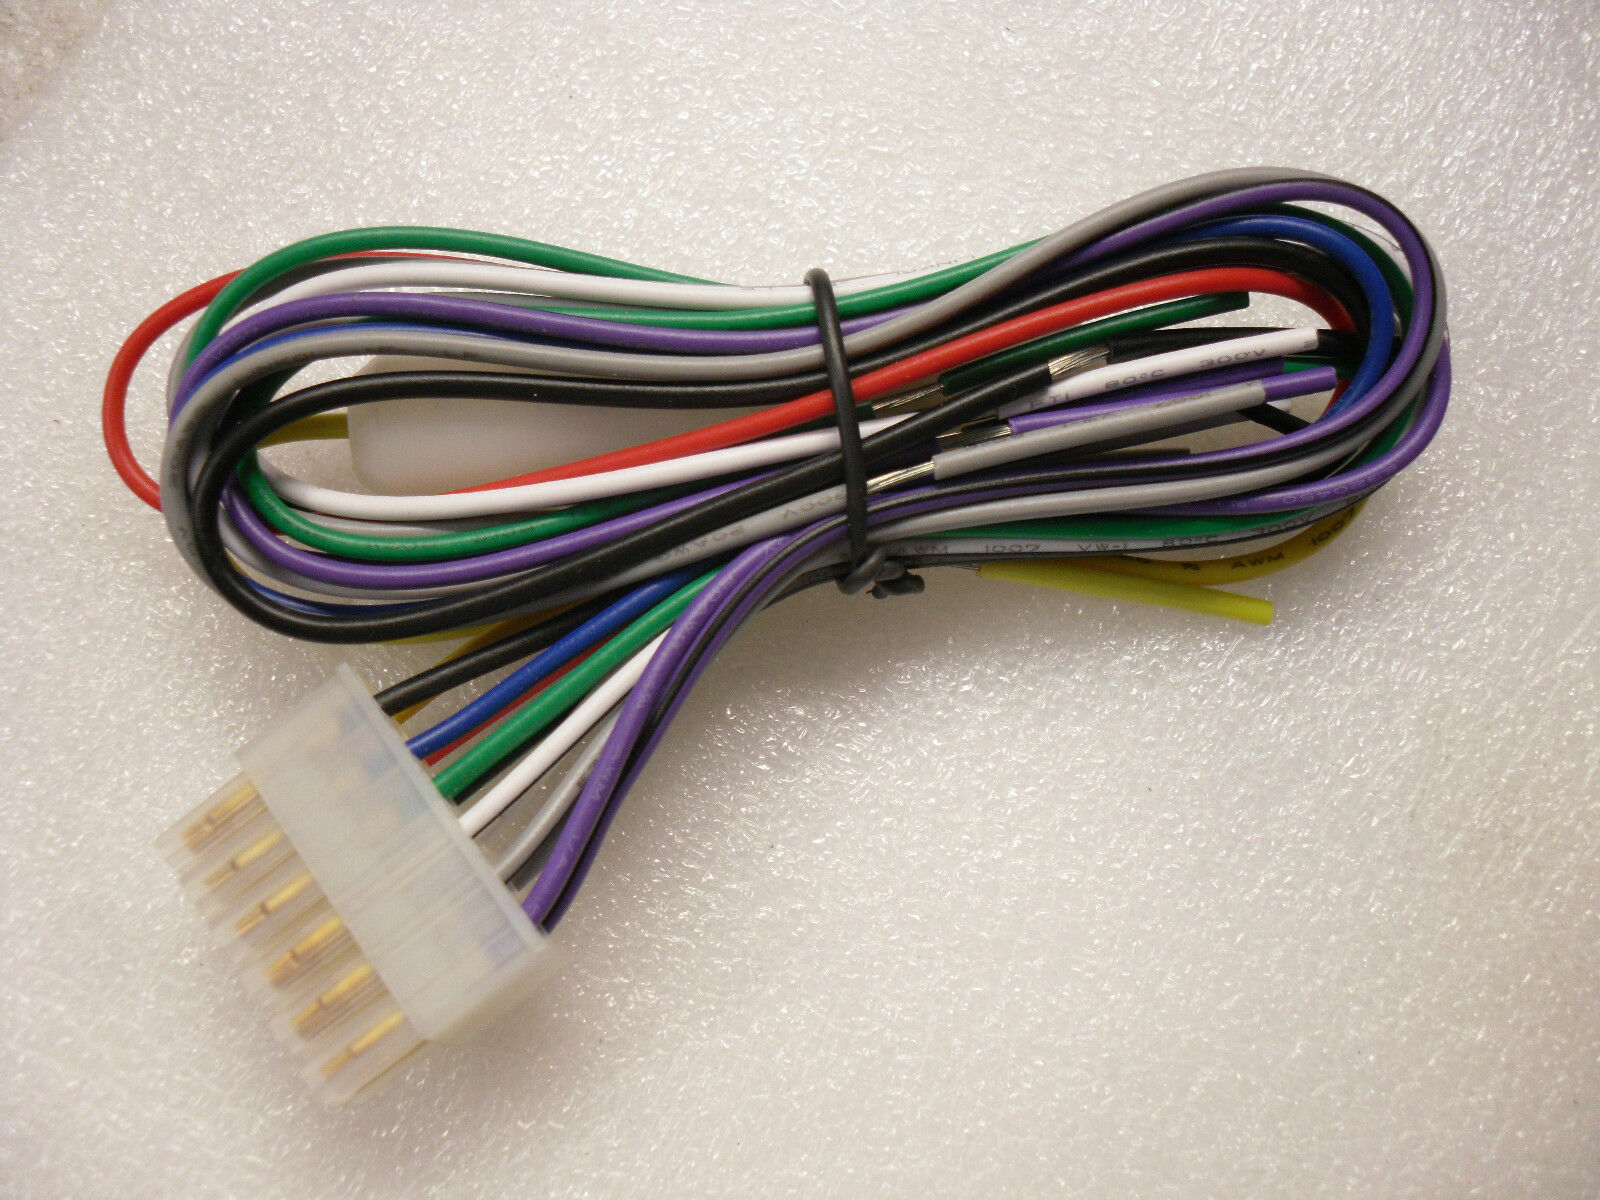 Dual Xd5250 Wiring Harness 26 Diagram Images Page 3 Of Car Stereo System Xdma6855 User Guide Manualsonline 57set Id880000500f Original Wire For Xdm260xd230mcp5250